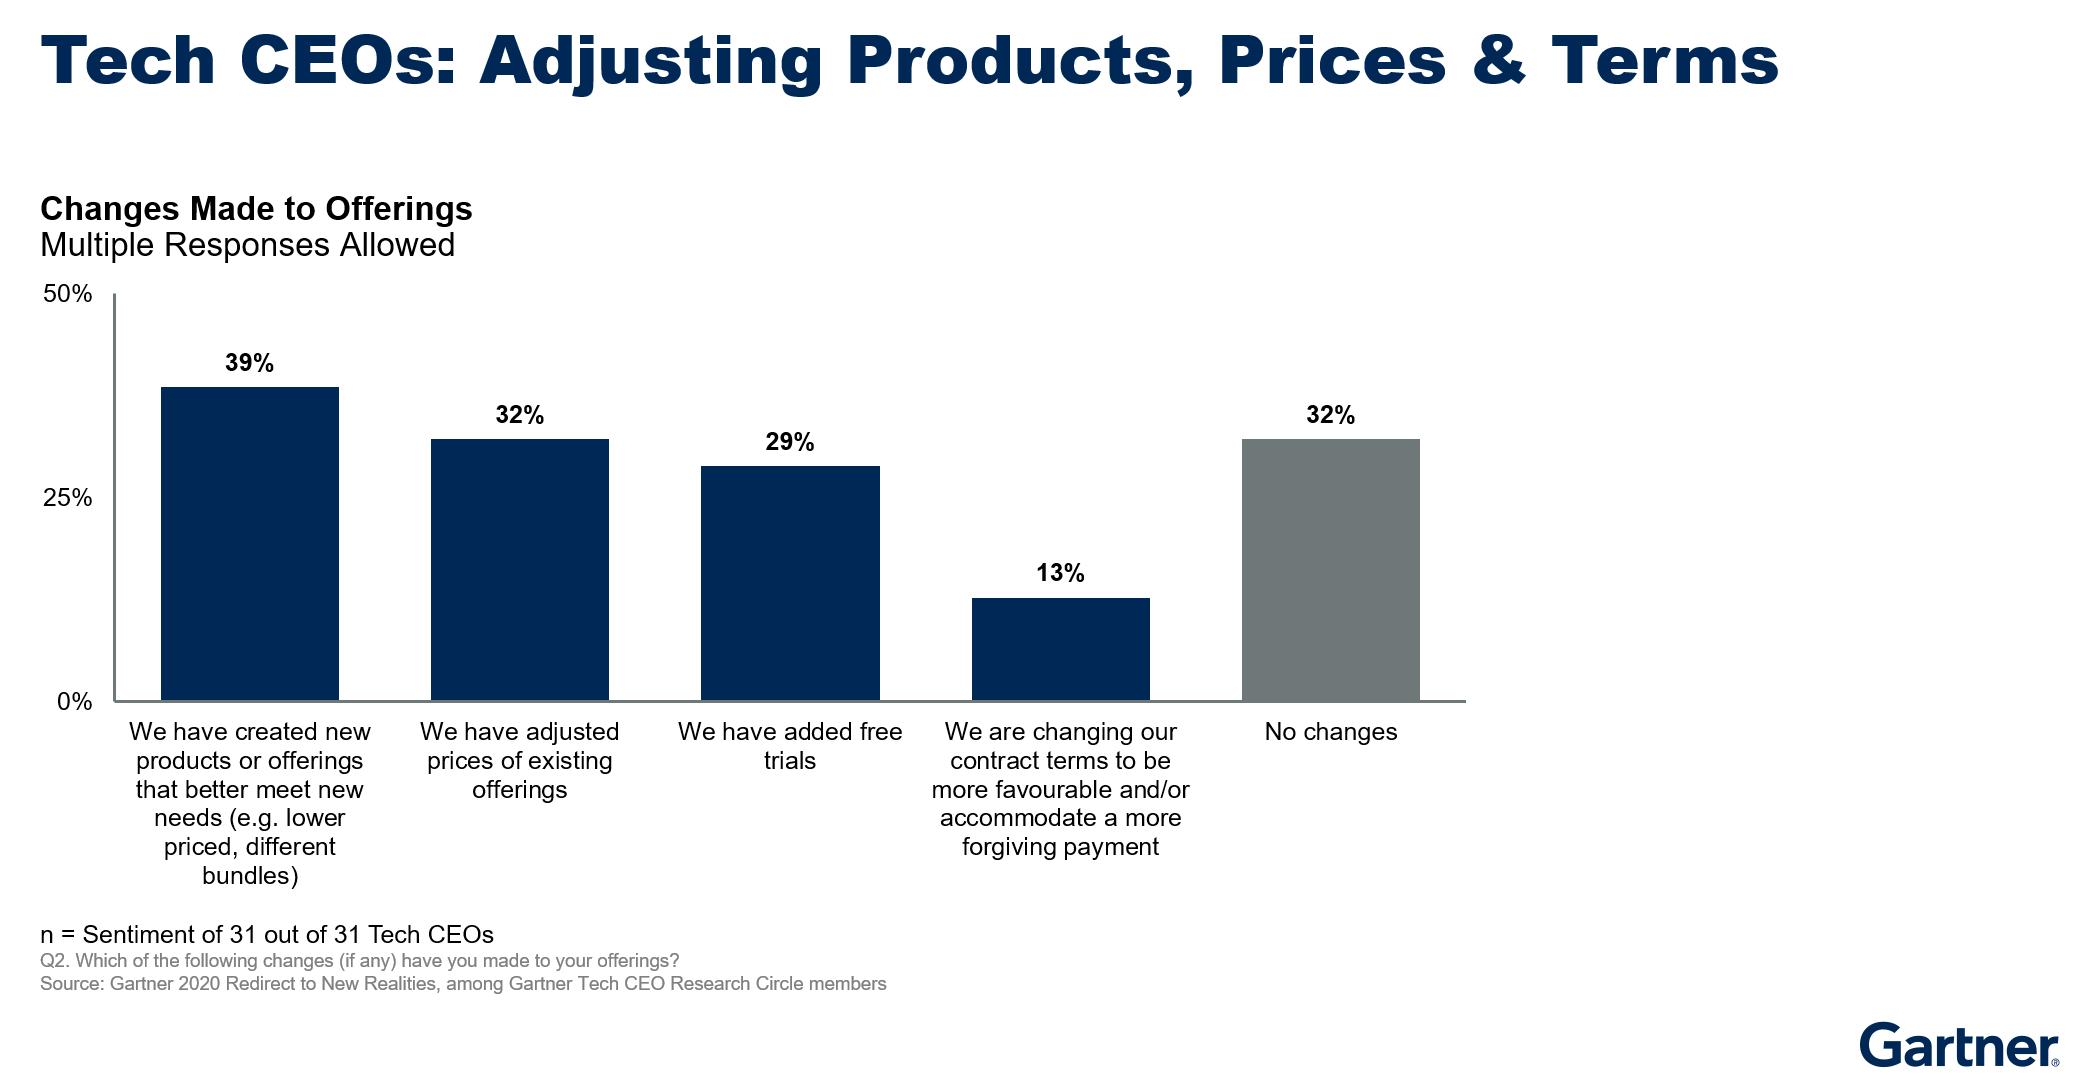 Figure 5. Tech CEOs Adjusting Products, Prices & Terms